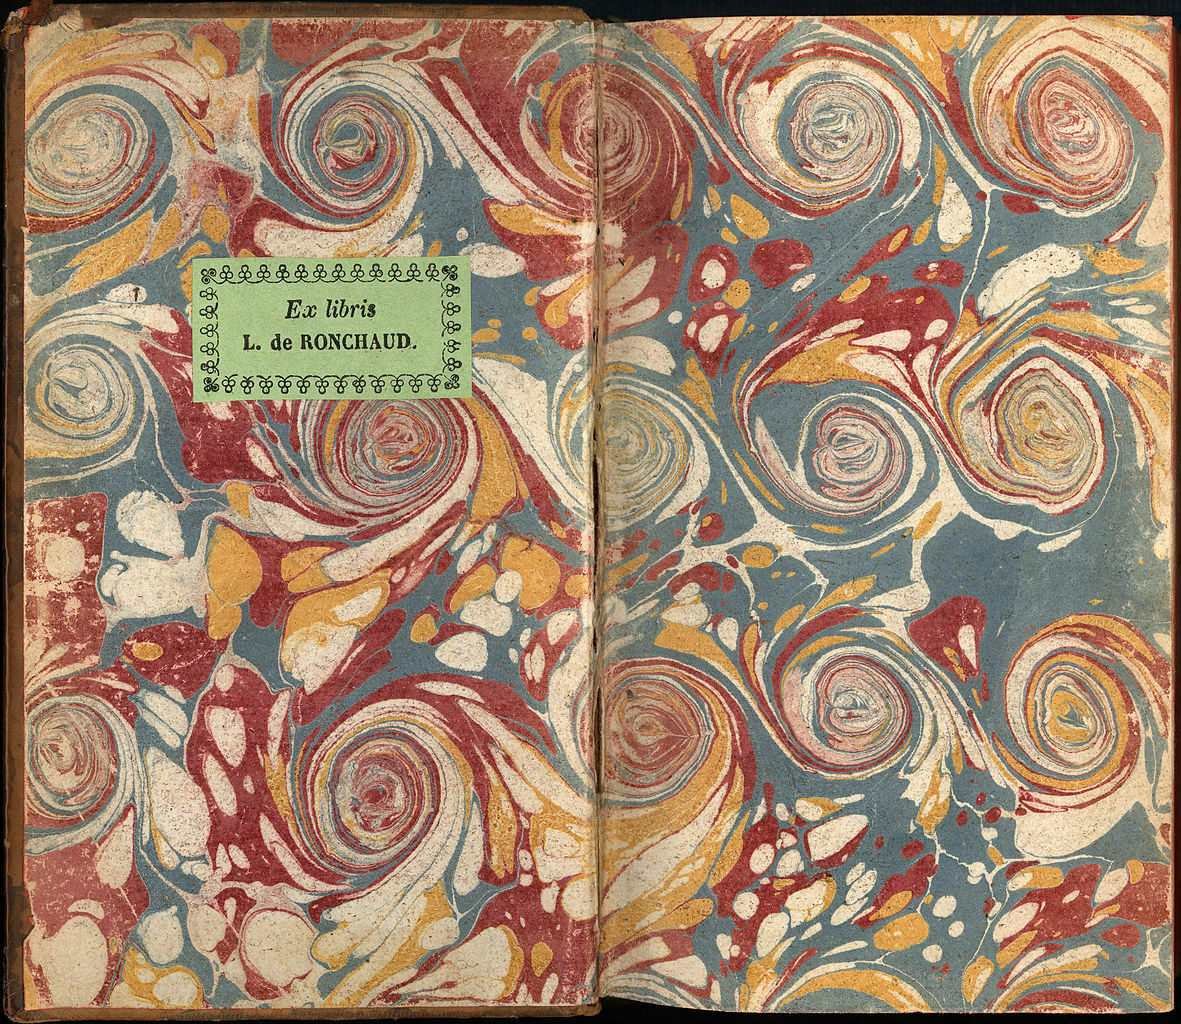 Endpapers of a 1735 book made in France.